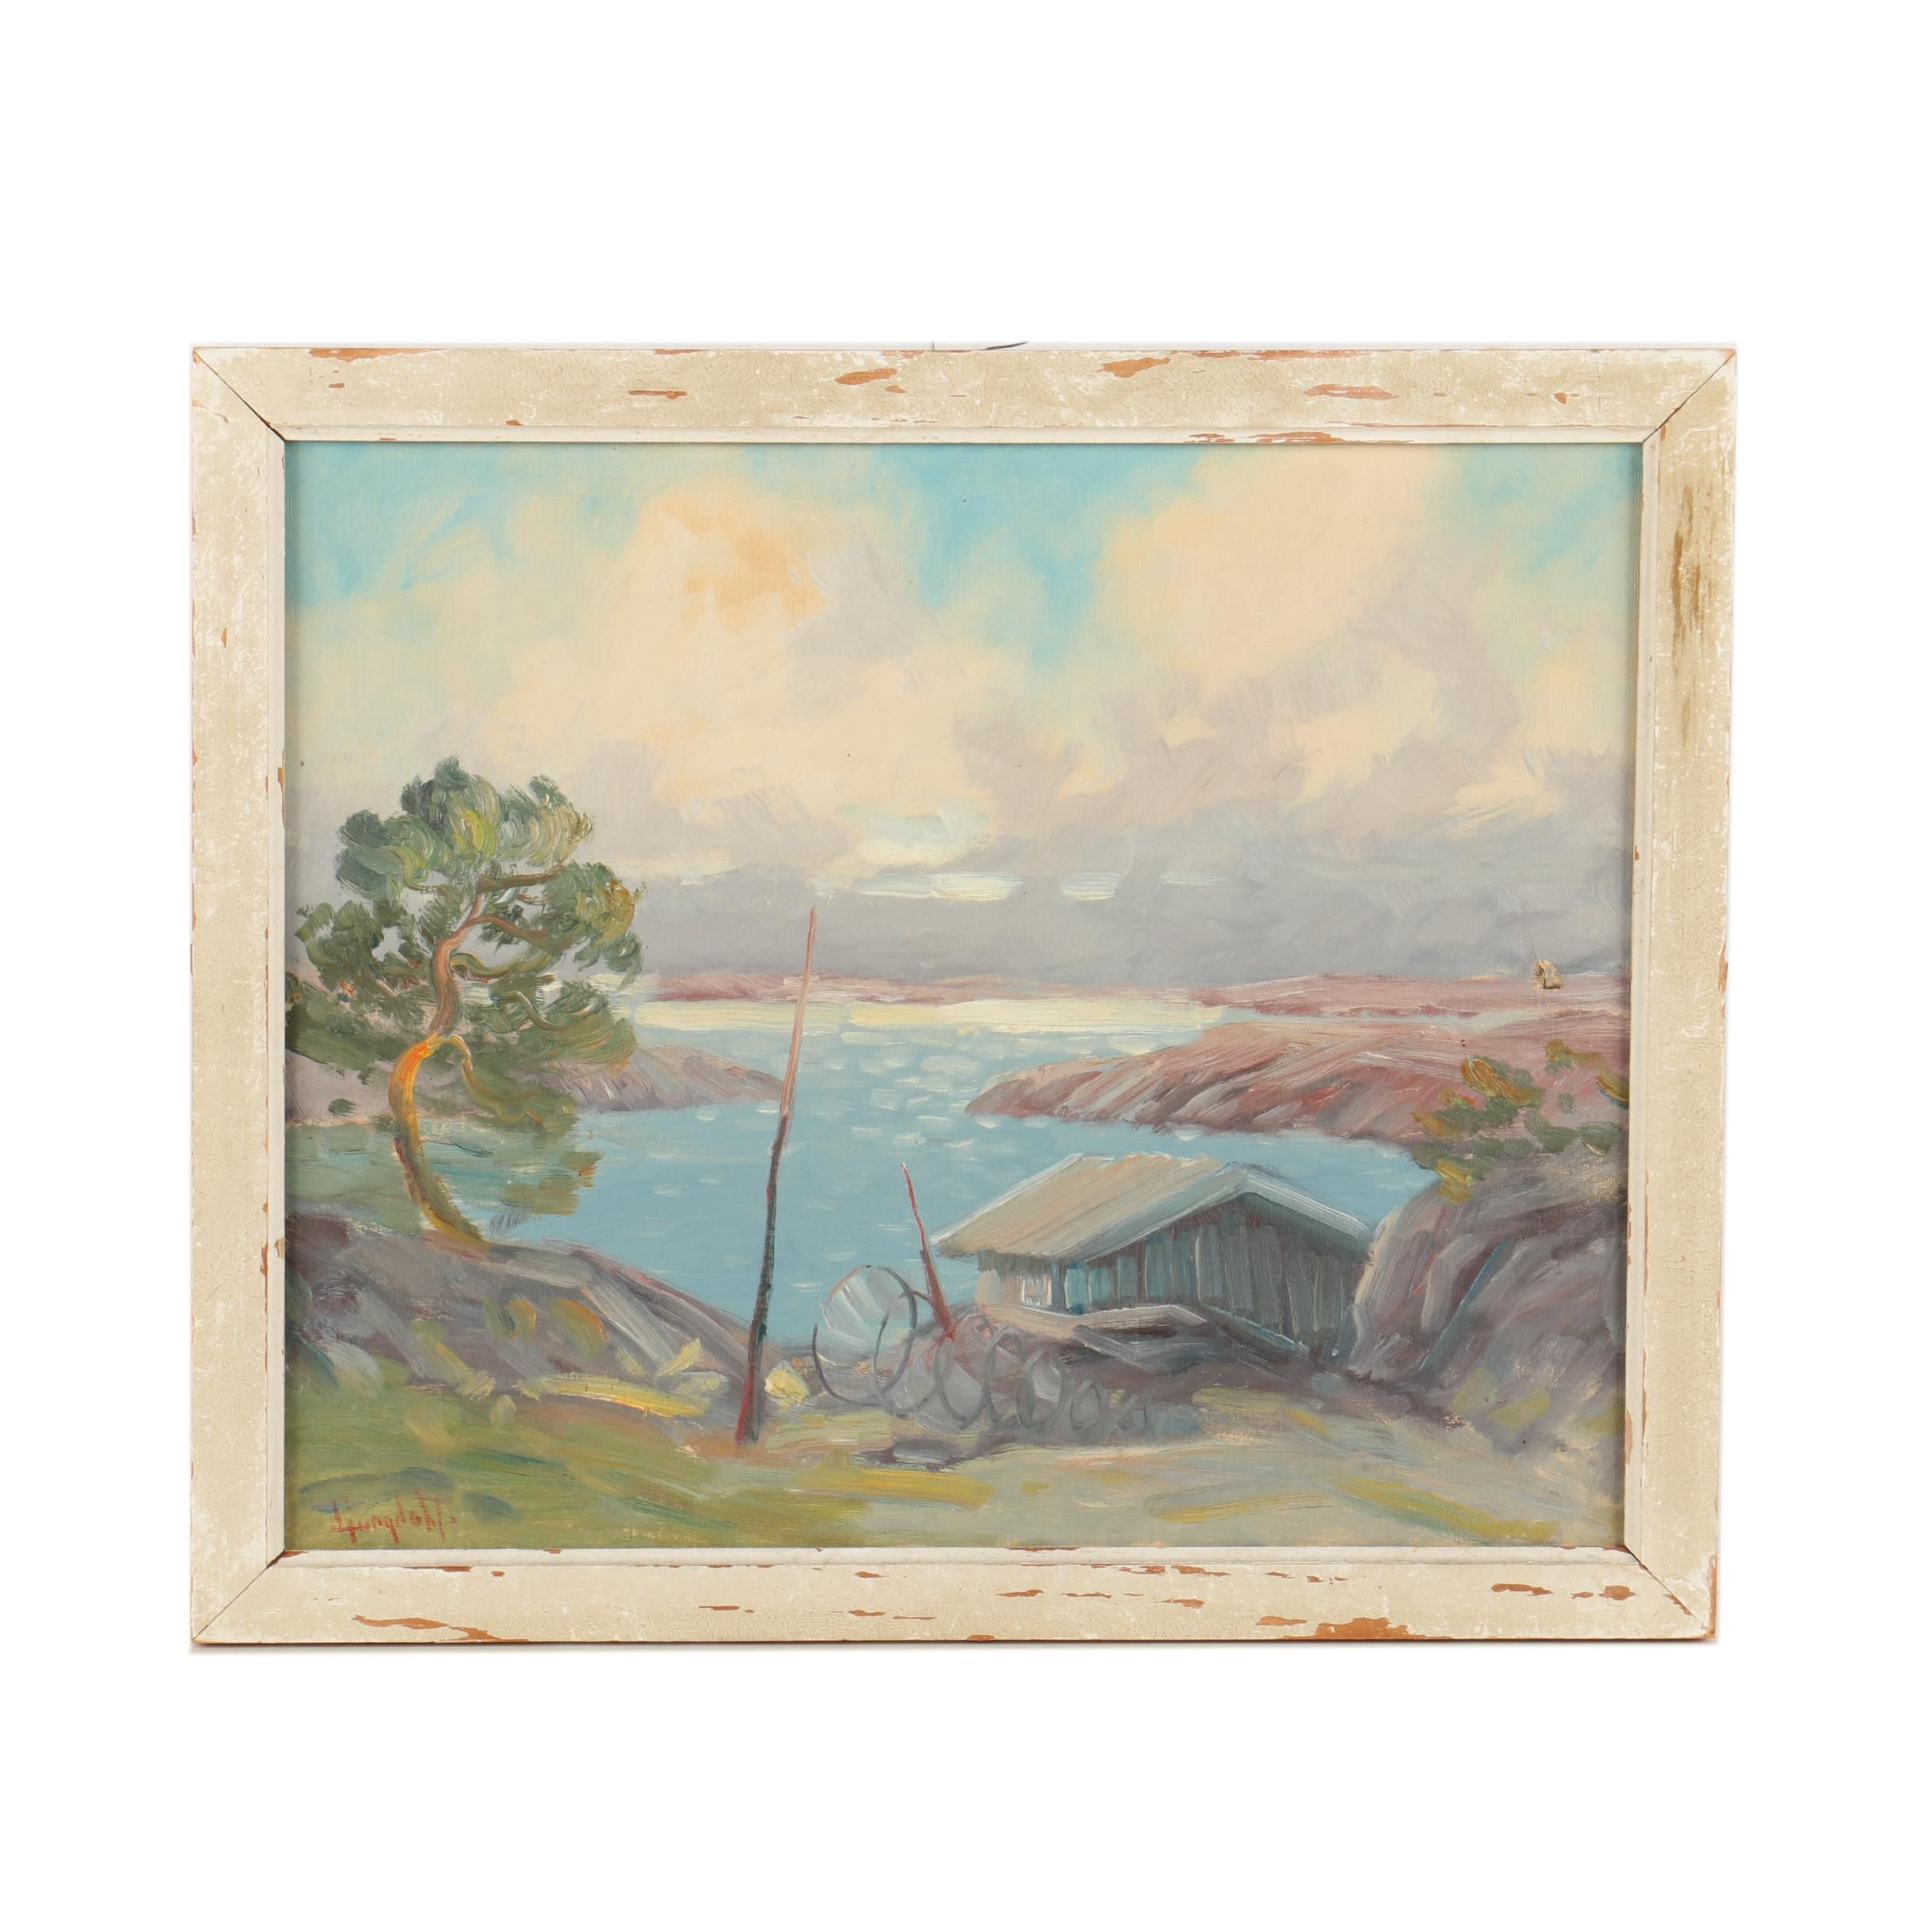 Oil Landscape Painting on Canvas Attributed to David Ljungdahl